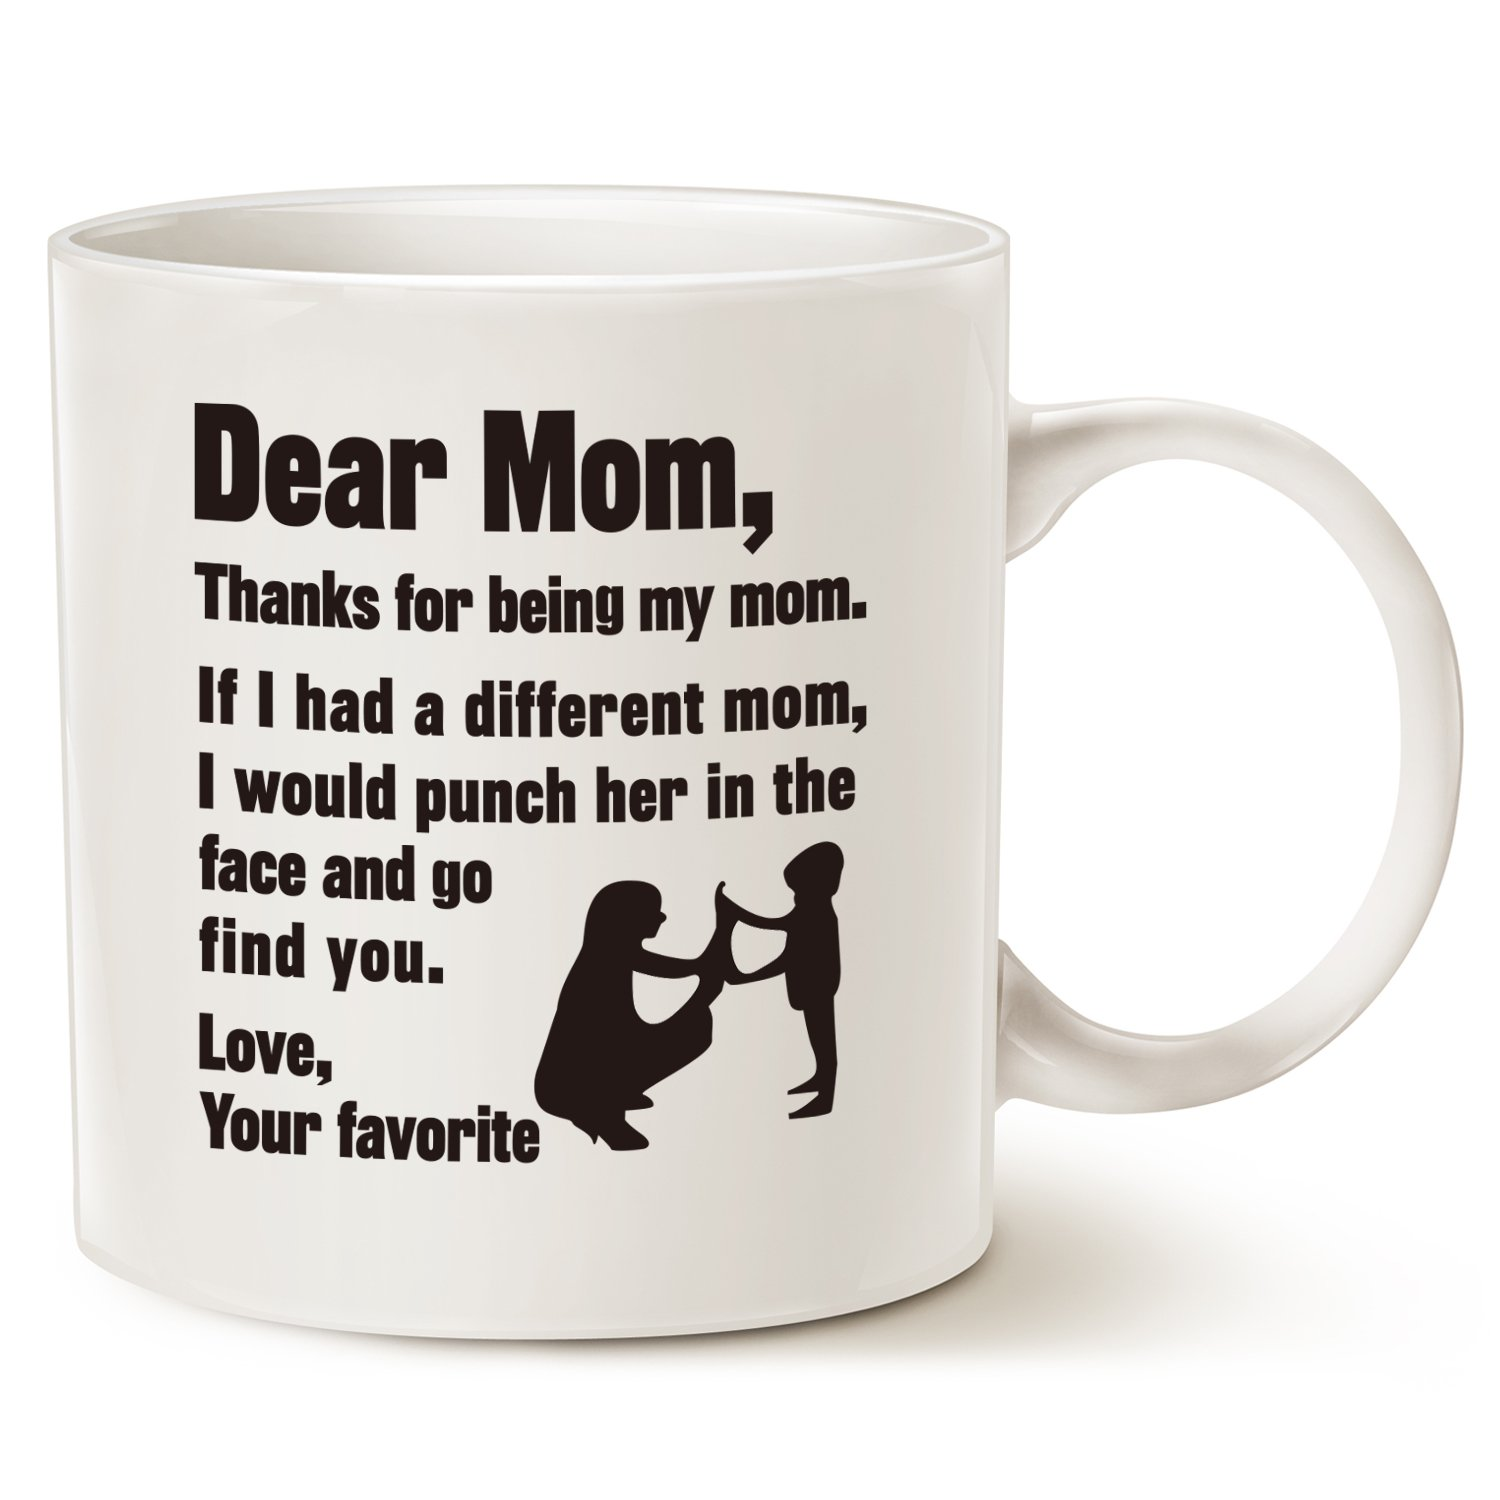 Funny Mother's Day Gifts for Mom Coffee Mug - Dear Mom, Thanks for being my mom. If I had... Love, Your favorite - Best Gag Gifts for Mom, Mother, Grandma Porcelain Cup, White 14 Oz by LaTazas